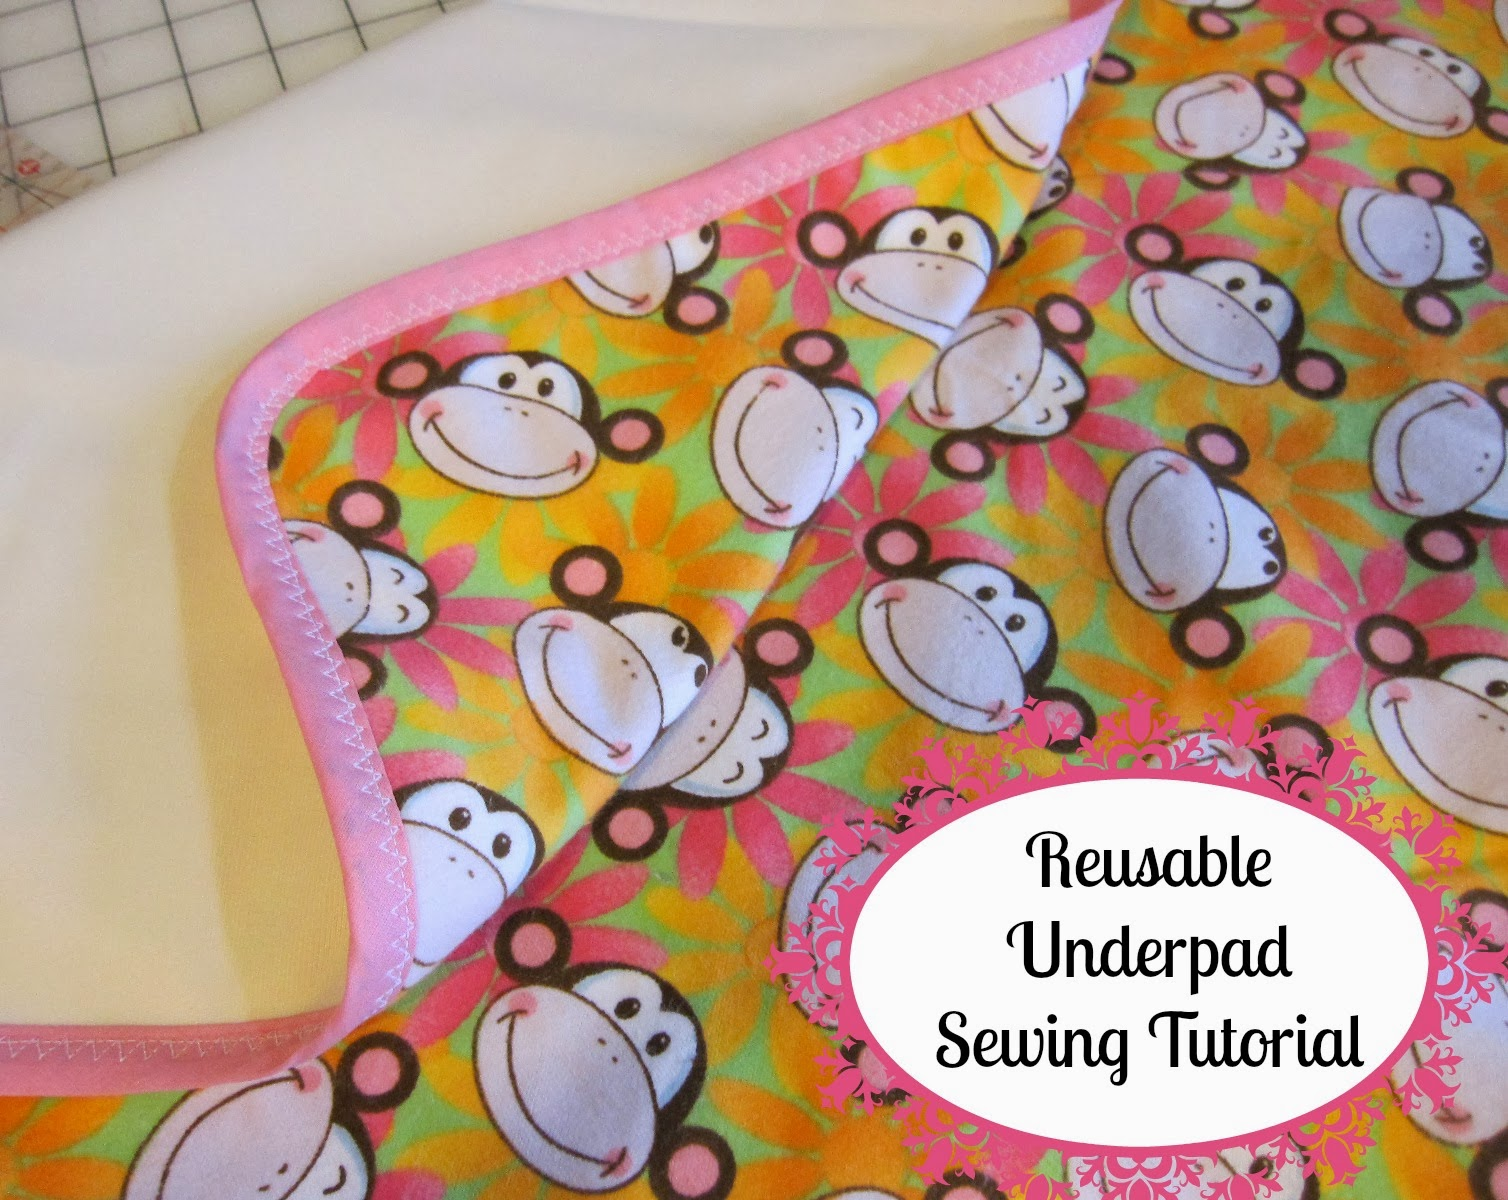 I Make These Reusable U0026 Absorbent Underpads For A Little Friend Of Mine  Occasionally, And Thought It Might Be A Project Others Could Use As Well,  ...